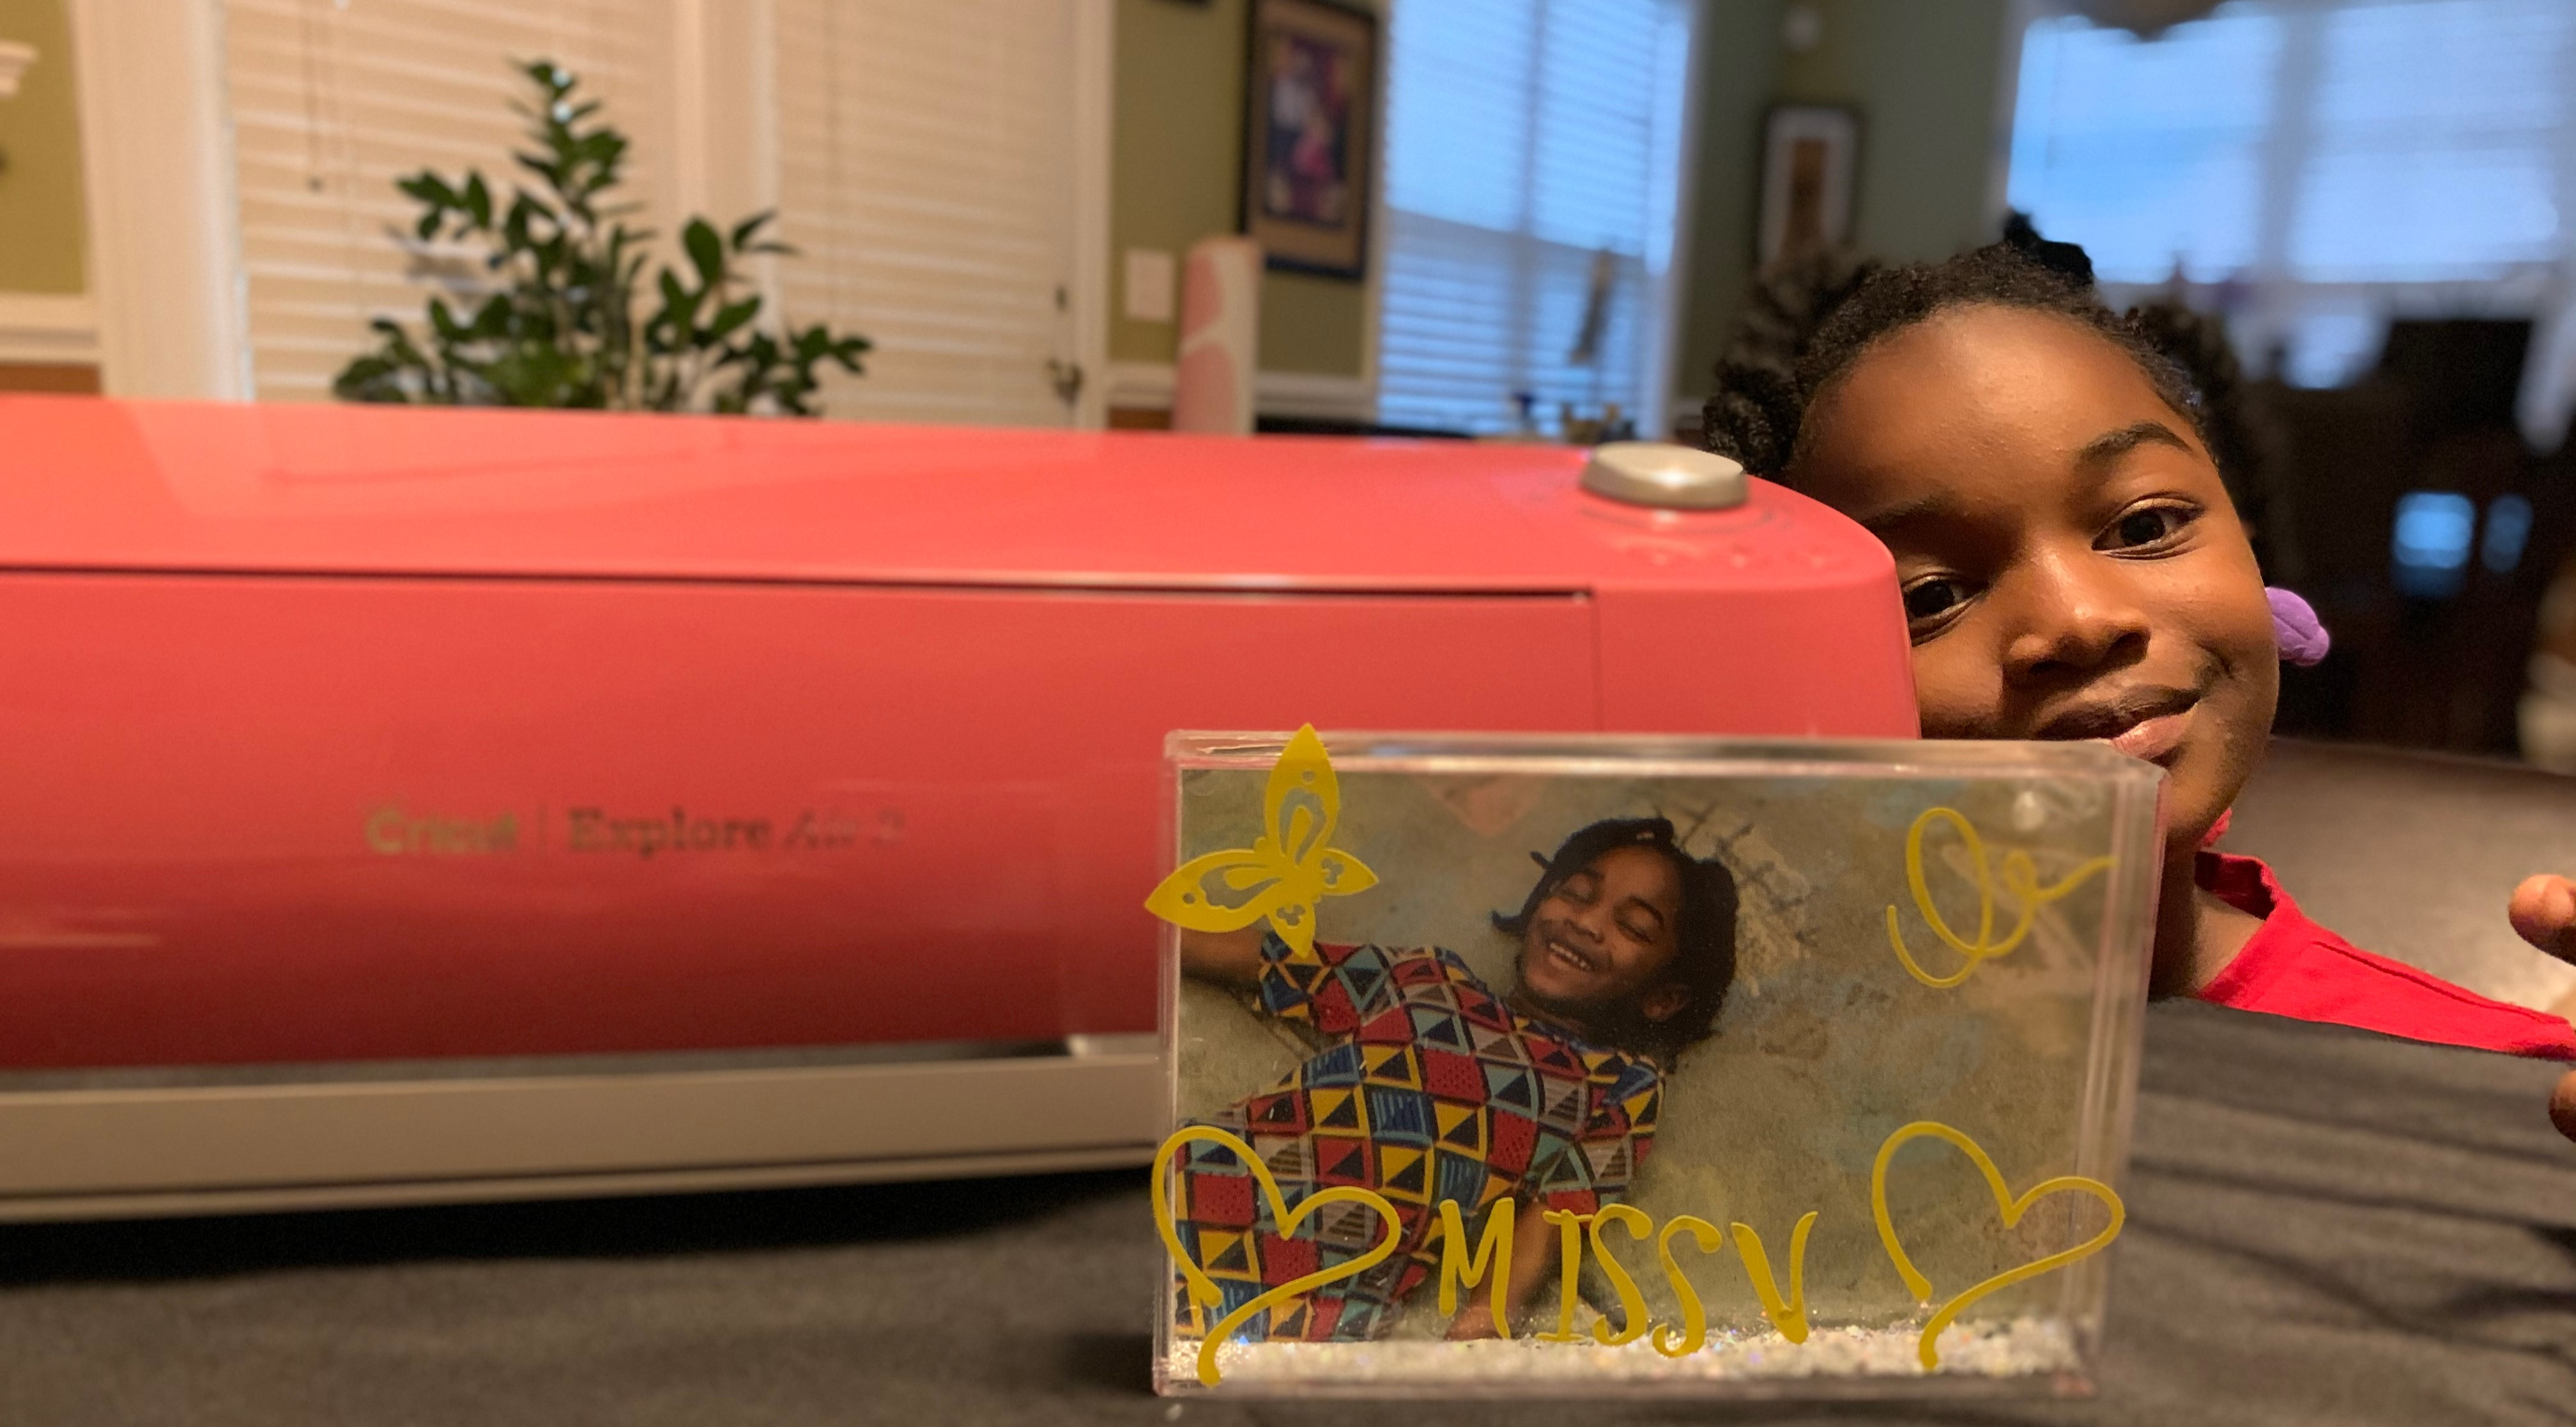 She is super excited about creating new projects with our Cricut Explore Air2